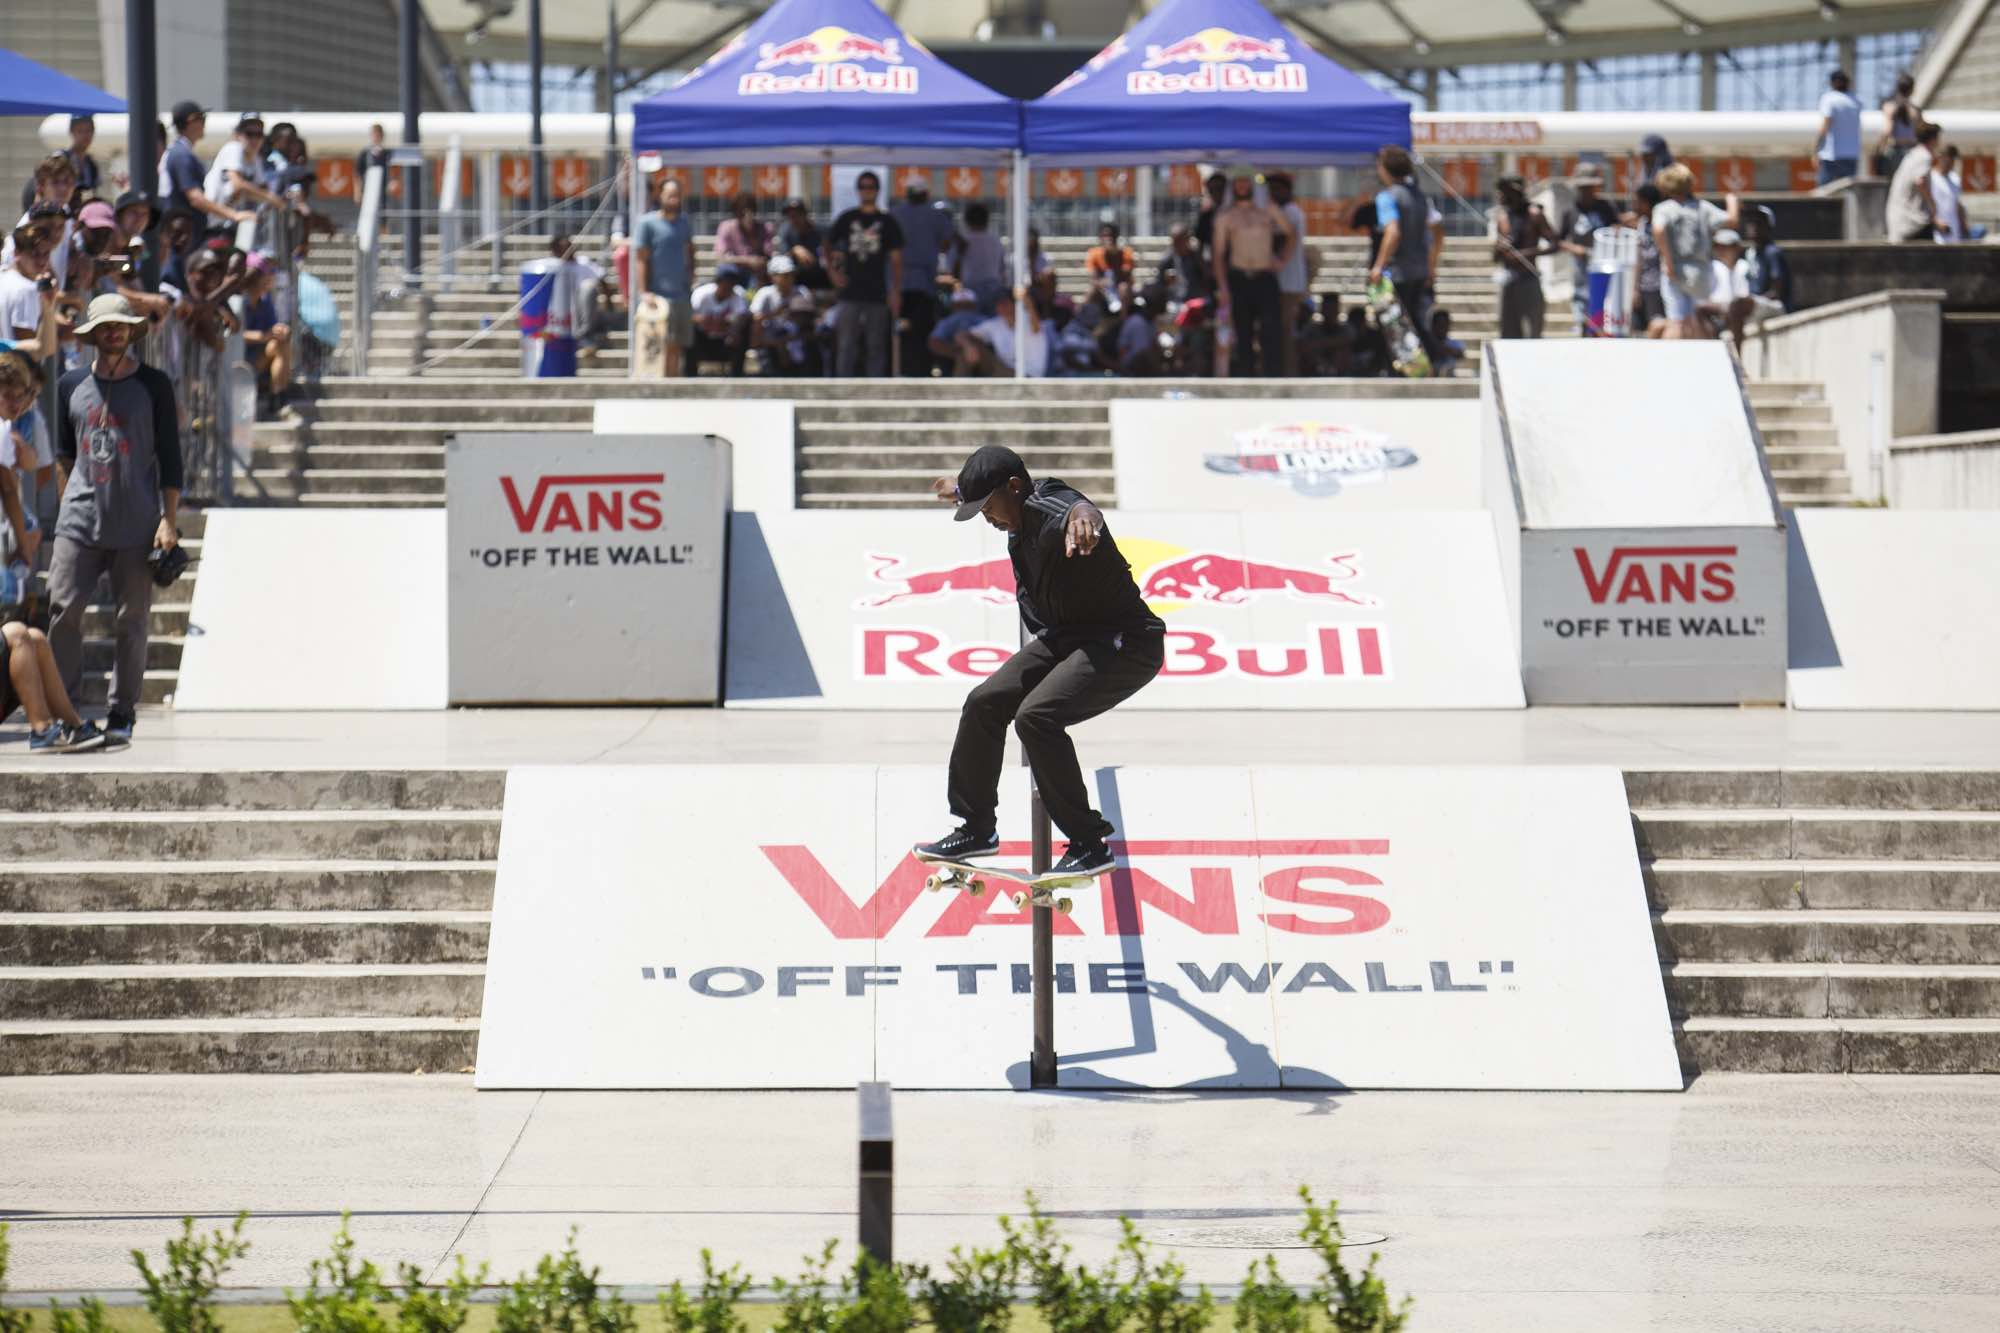 Dlamini Dlamini skating his way to victory at Red Bull Unlocked 2016